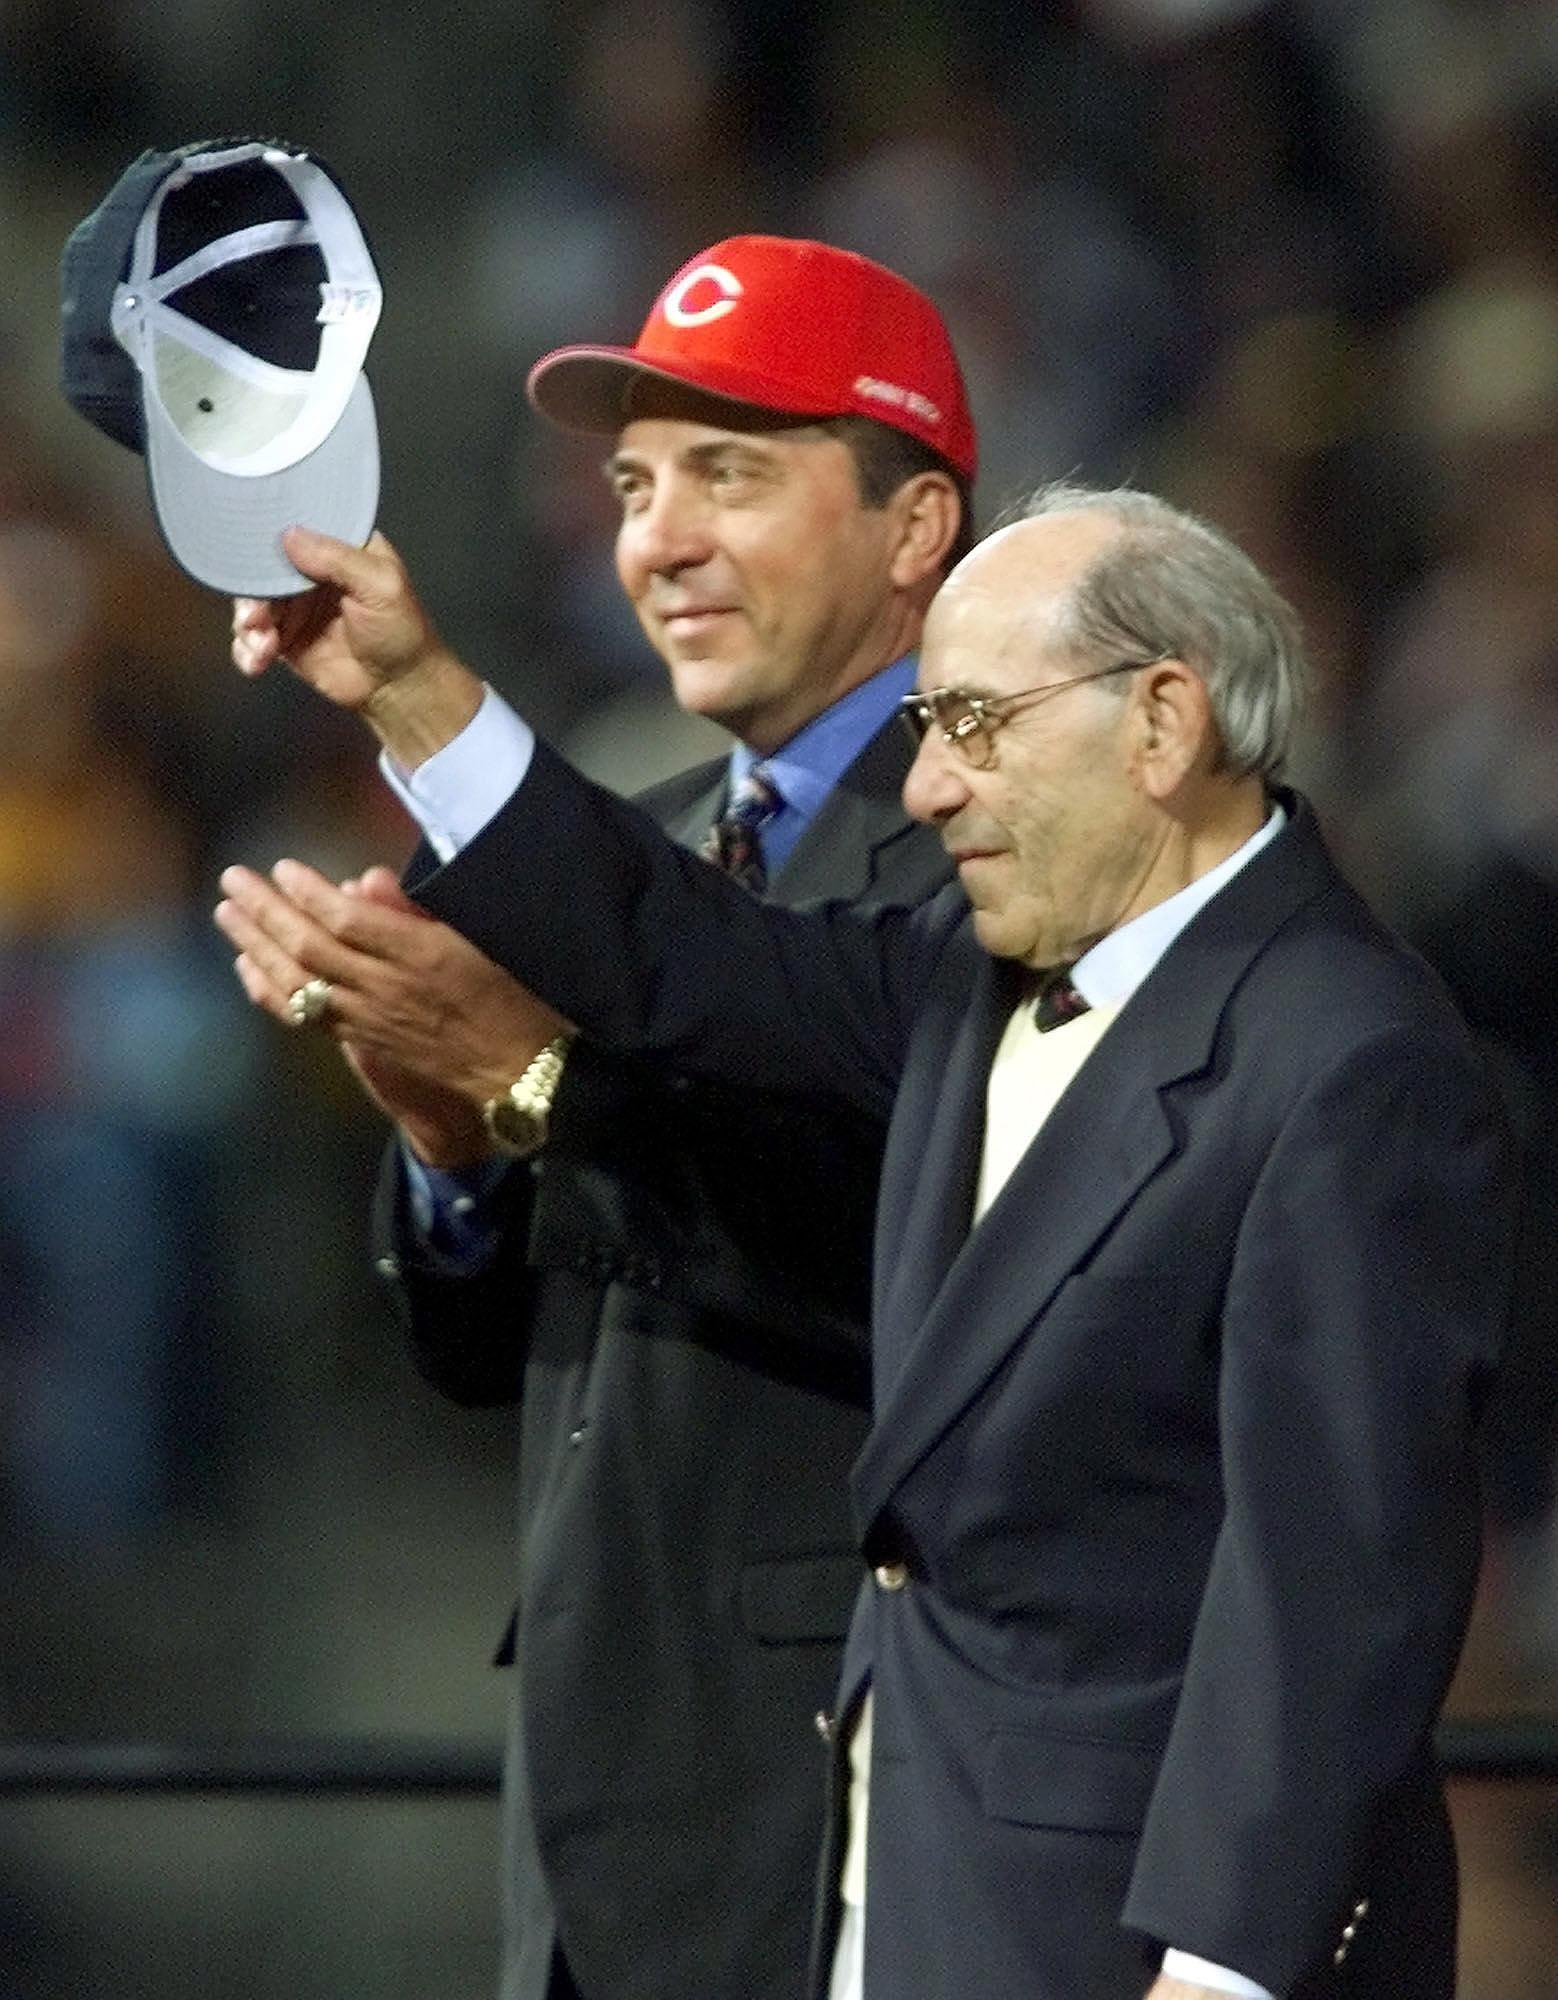 ATLANTA, UNITED STATES:  All-Century team members, catchers Yogi Berra (R) and Johnny Bench, are introduced 24 October, 1999 before game two of the 1999 World Series at Turner Field in Atlanta, GA. Berra played for the New York Yankees and Bench for the Cincinnati Reds. The New York Yankees have a 1-0 lead over the Atlanta Braves in the best-of-seven series.   (ELECTRONIC IMAGE)  AFP PHOTO/JEFF HAYNES (Photo credit should read JEFF HAYNES/AFP/Getty Images)